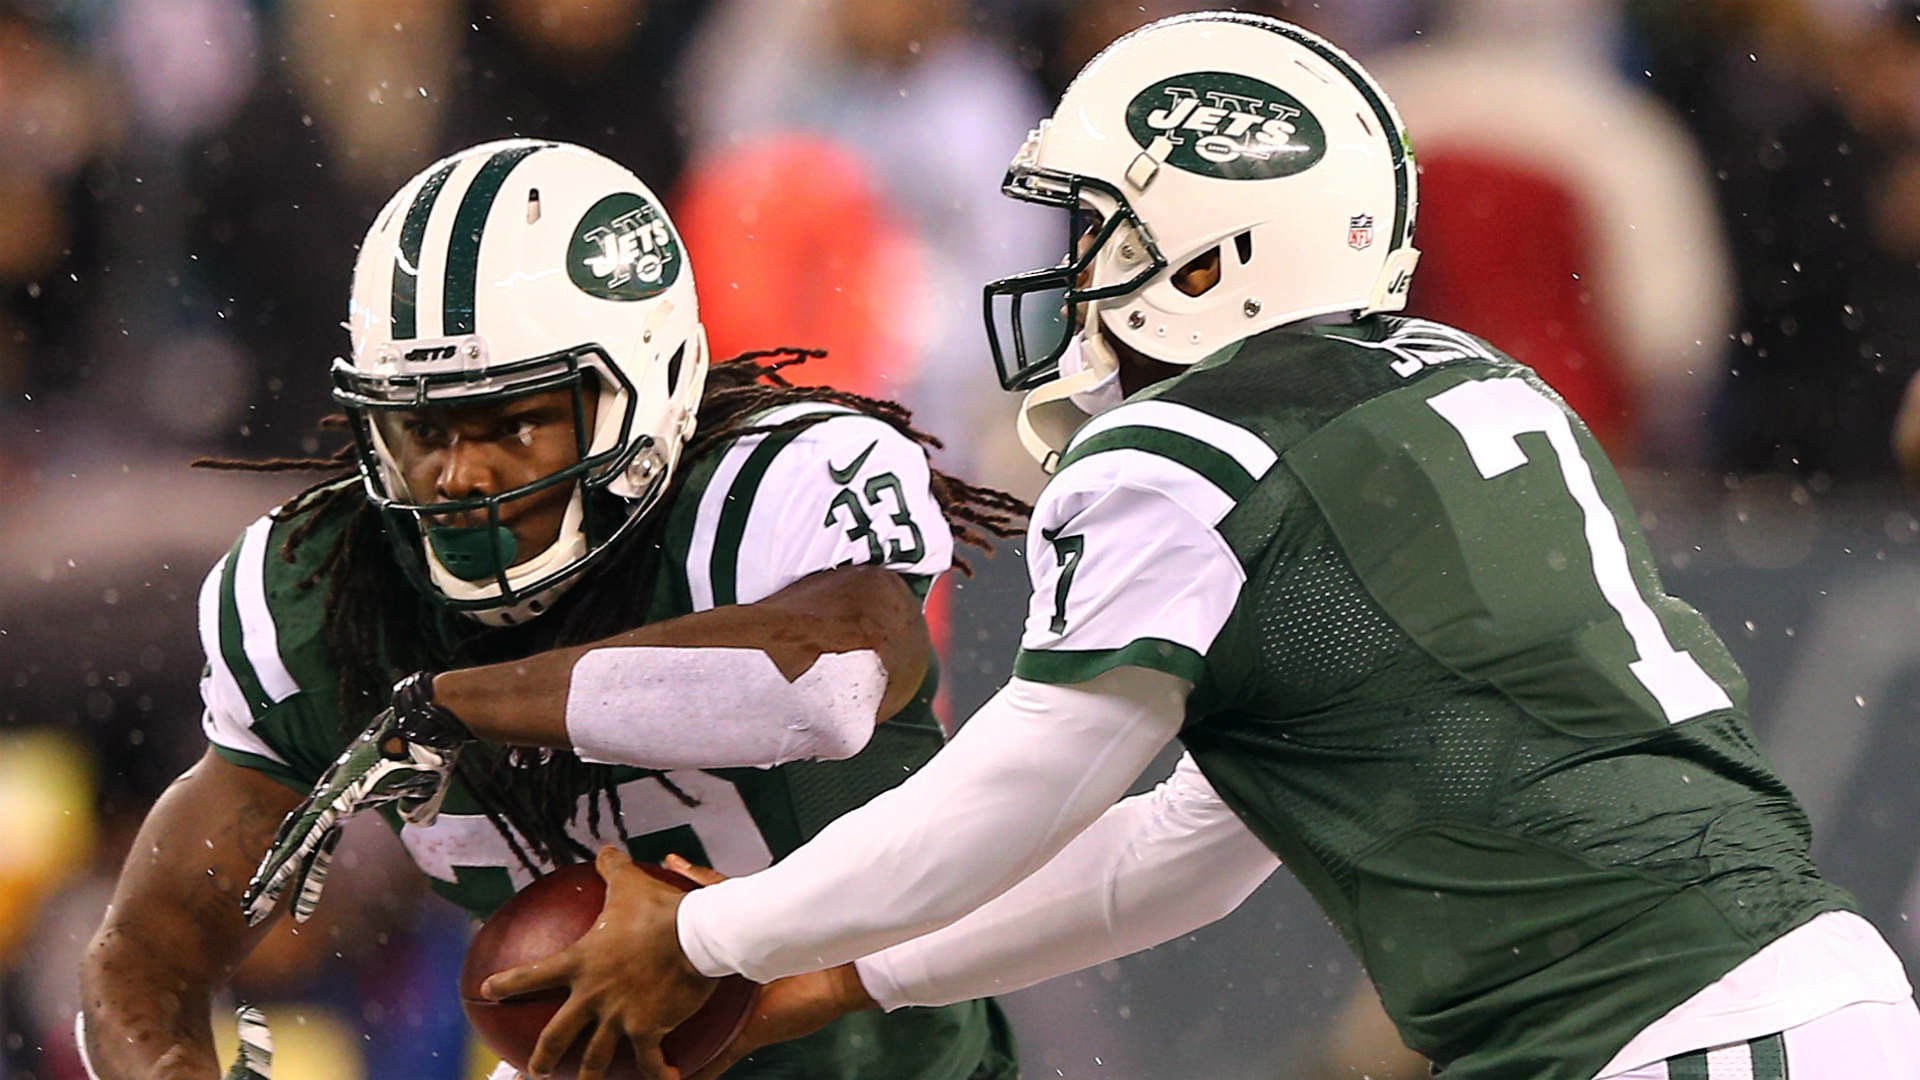 A New York Jets veteran said the team's management has quit on the season.